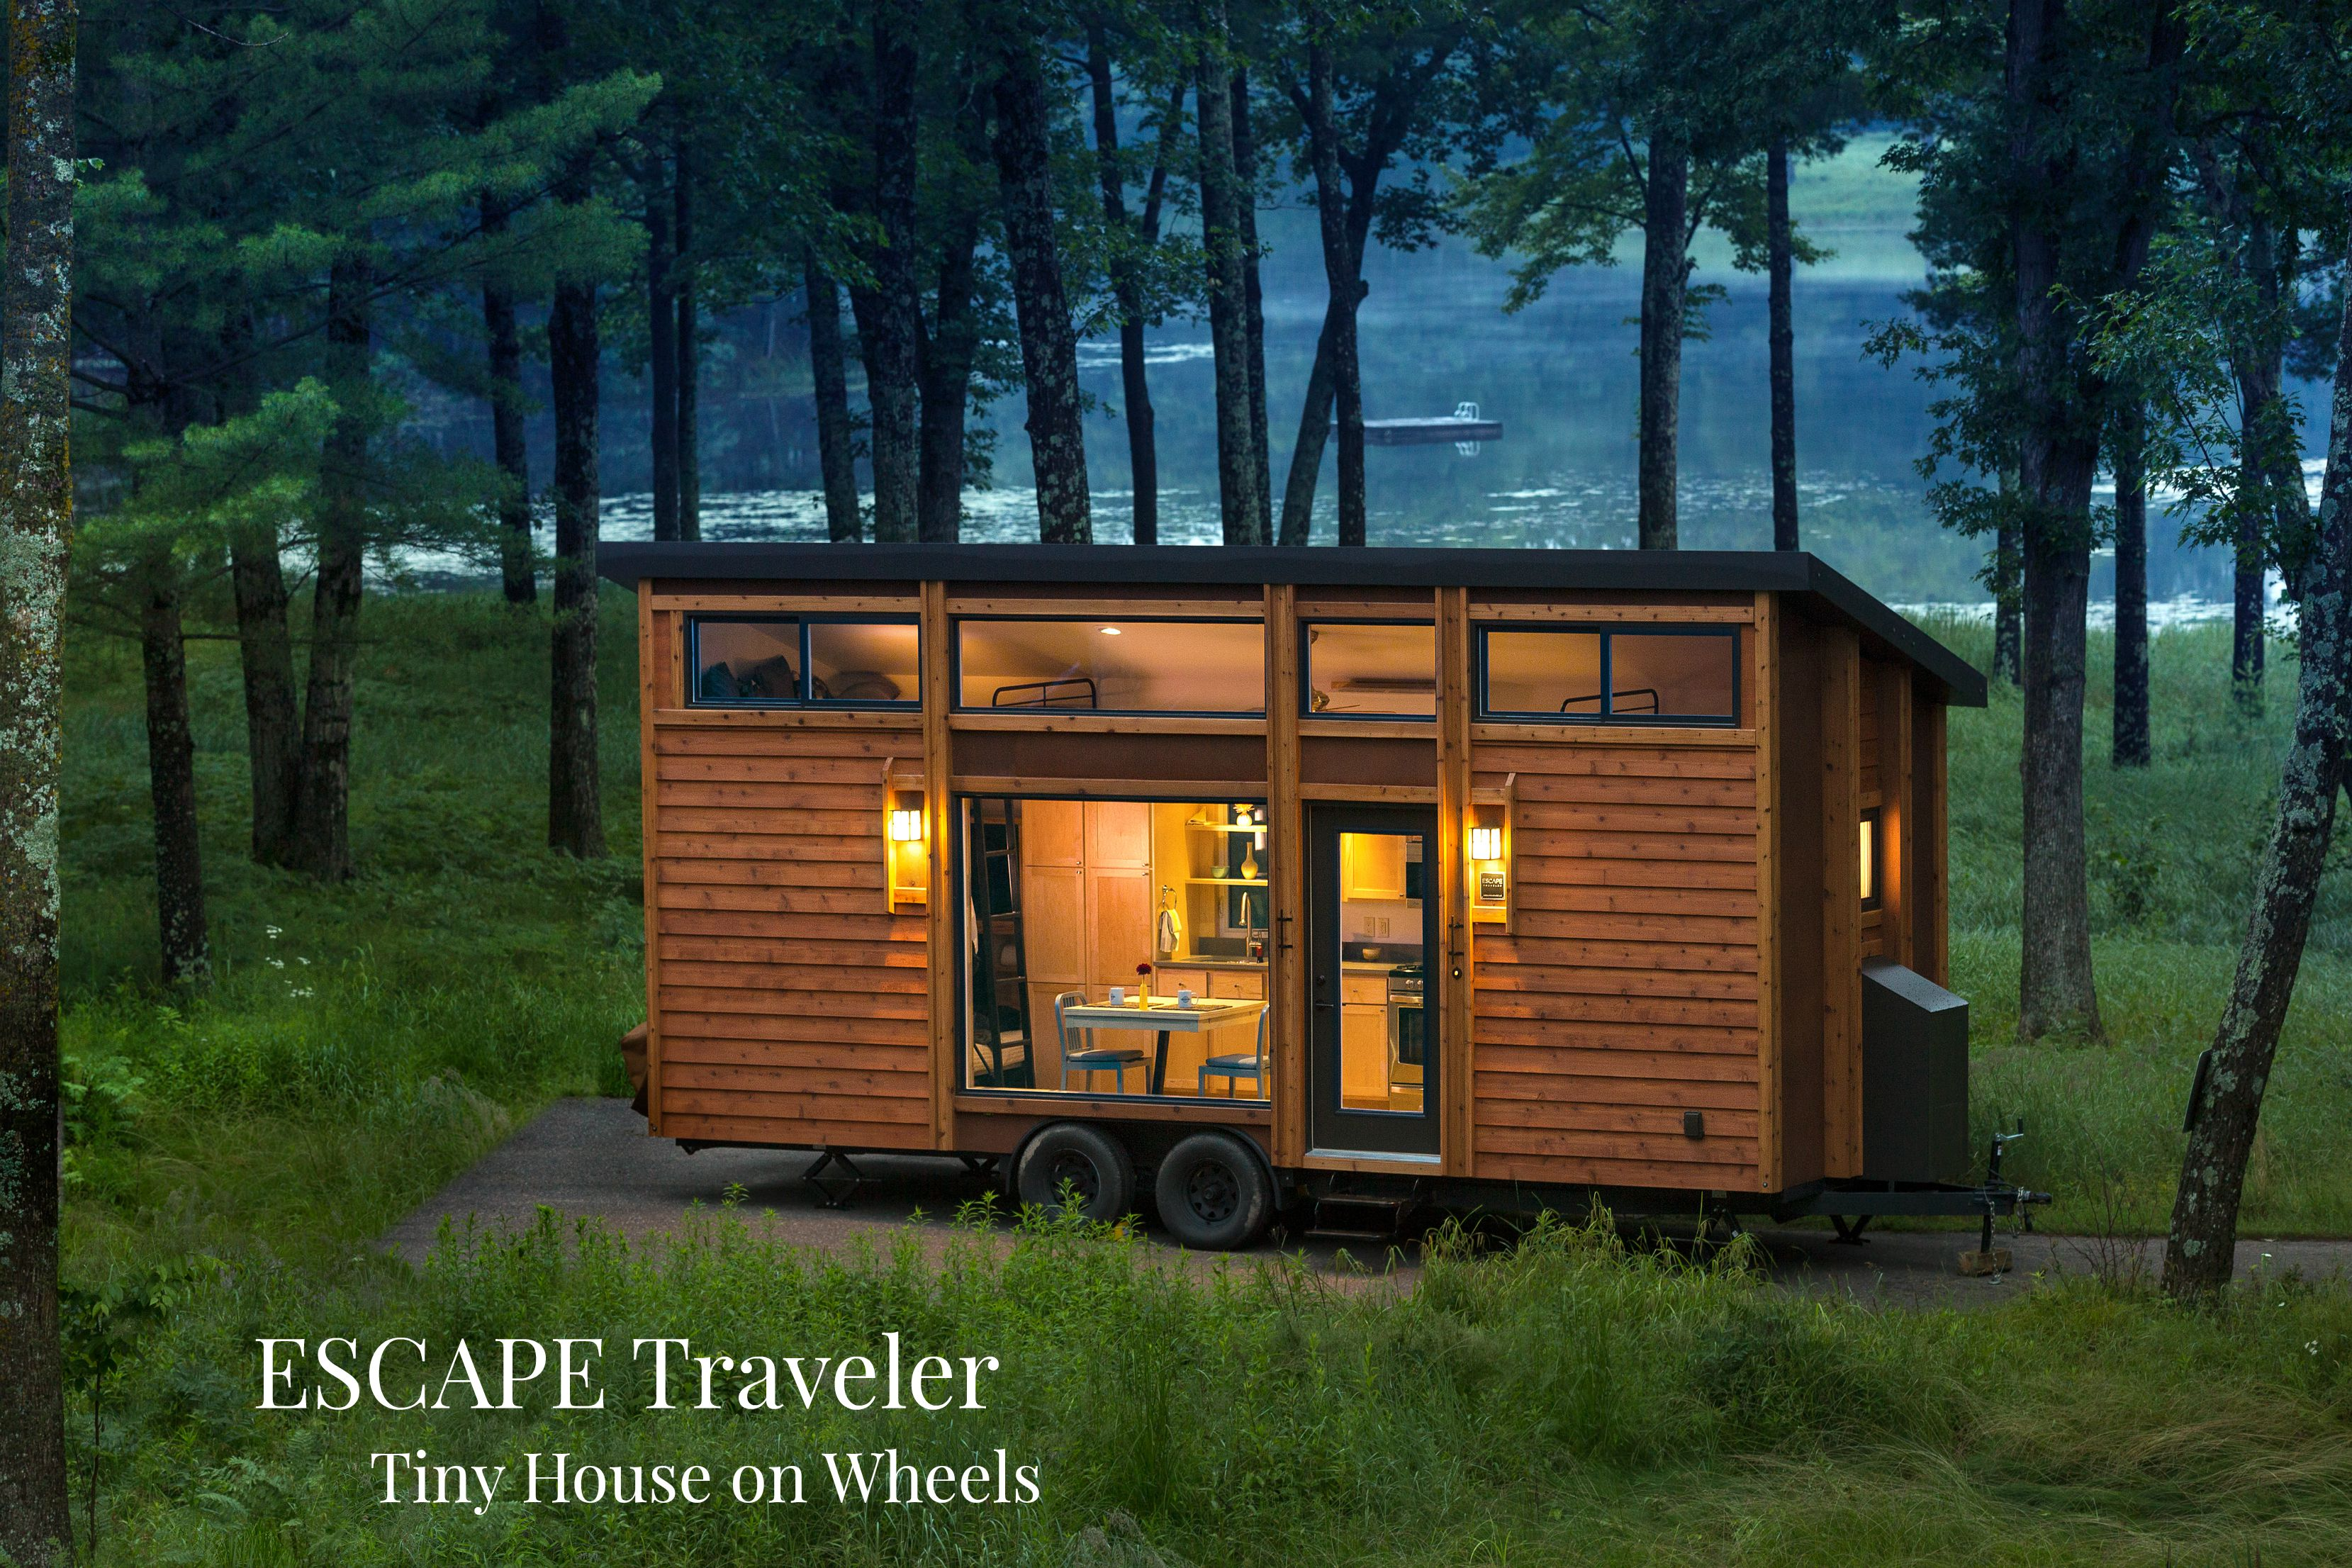 Escape Traveler Tiny House On Wheels - house on wheels